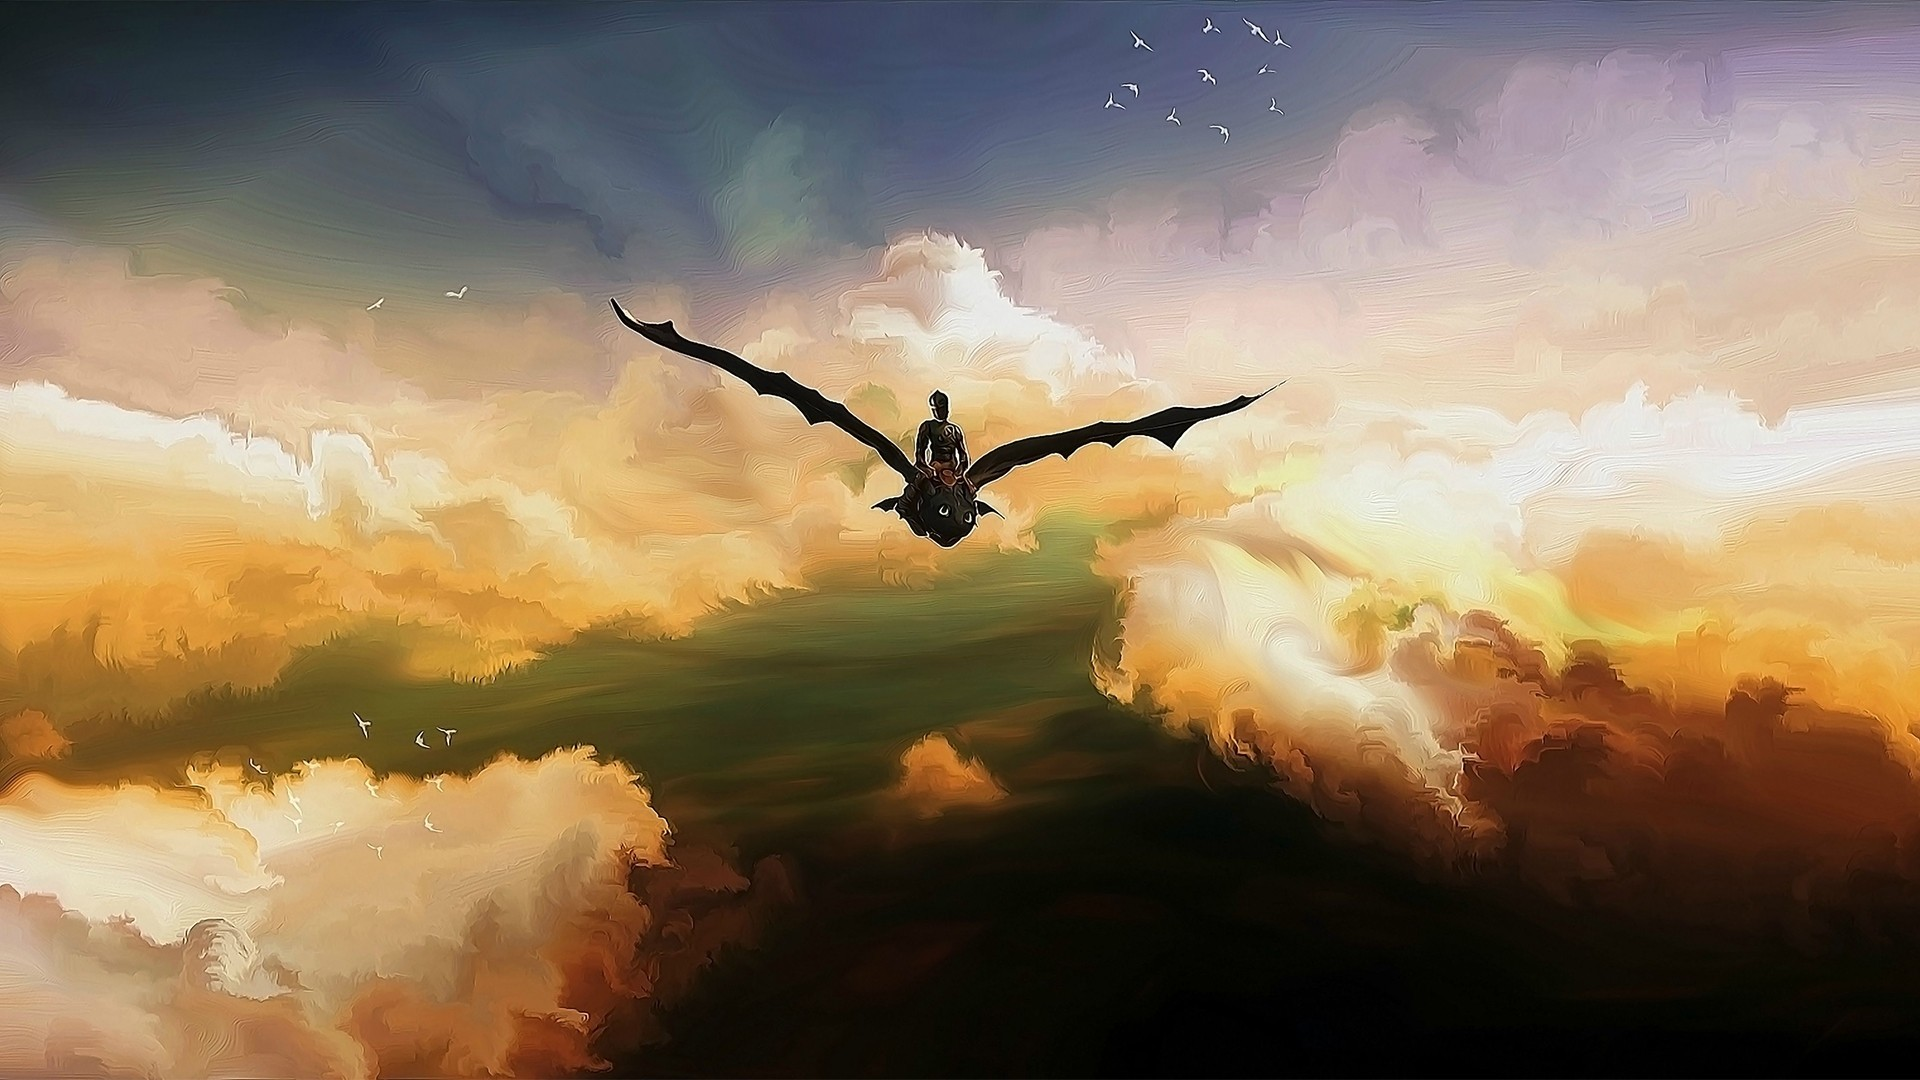 1920x1200 8 best images about dragon on Pinterest | Hiccup, Thoughts and . Download · 1920x1080 Cute Toothless Wallpaper ...